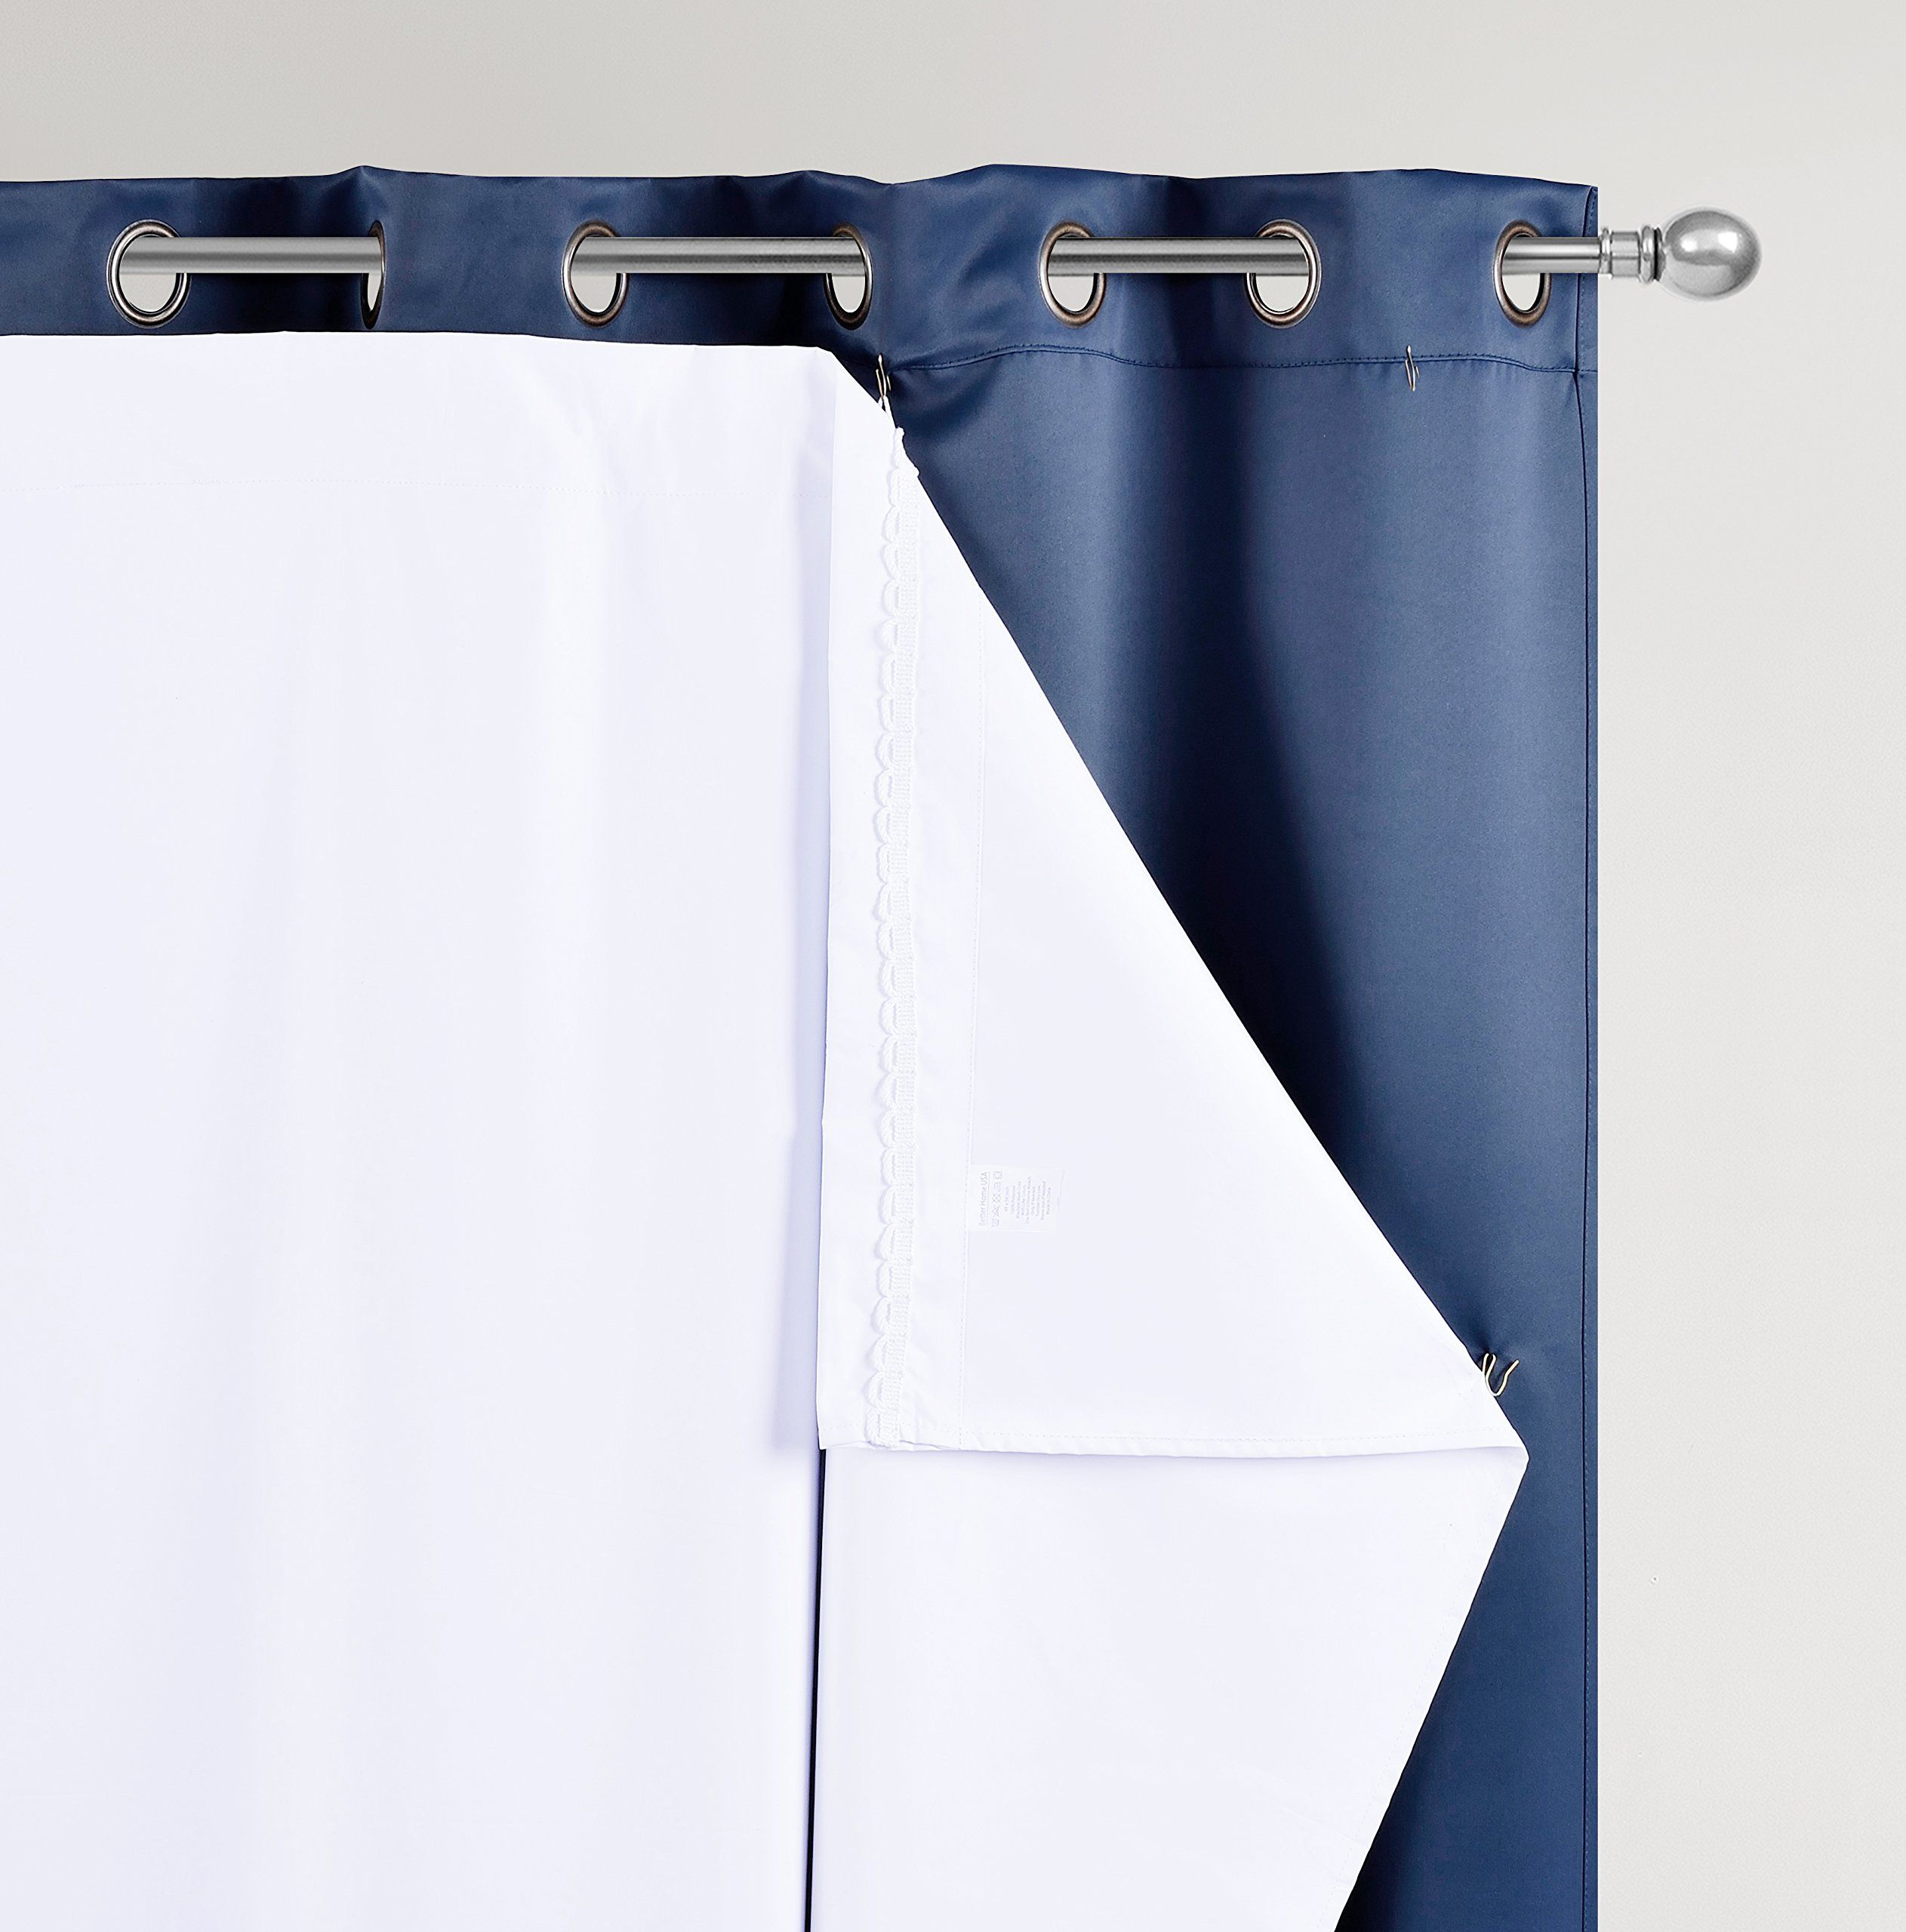 Bhu Thermal Insulated Blackout Curtain Liner For 108 Inch Curtainsblackout One Panel 48w By 101l Inches Hooks Included Click Image More